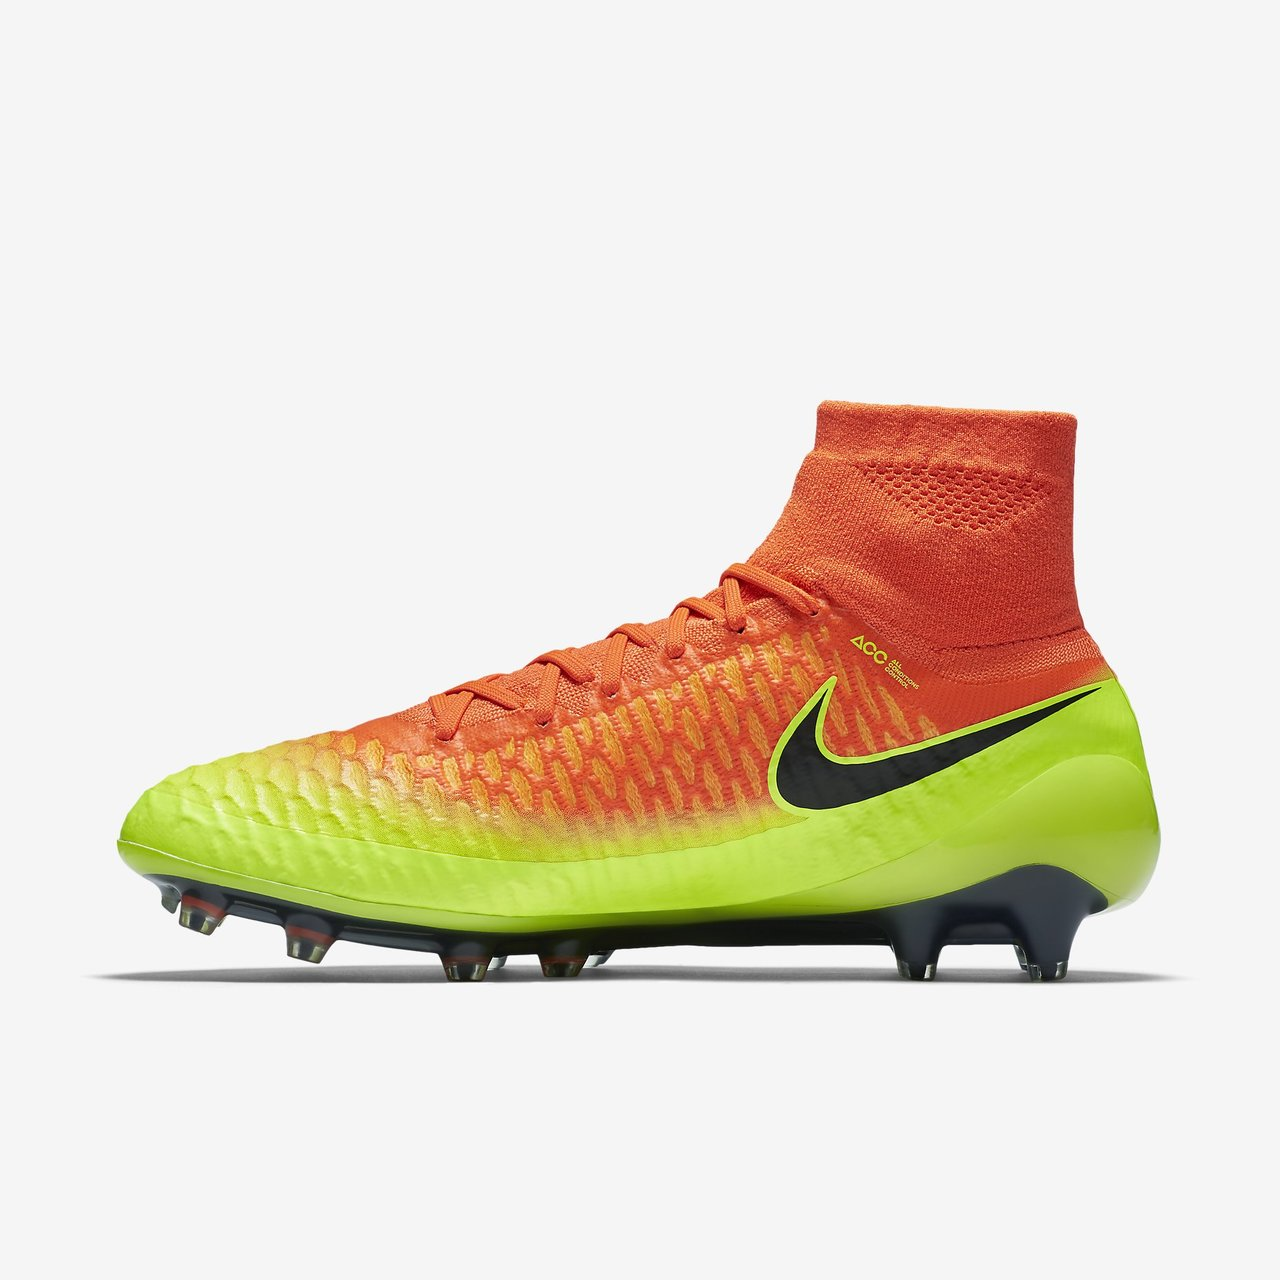 new arrival 9138d 75d4f coupon for nike magista opus ii fg total crimson black 6fd24 b56b5  denmark  click to enlarge image nike magista obra fg spark brilliance 85fd7 e199f